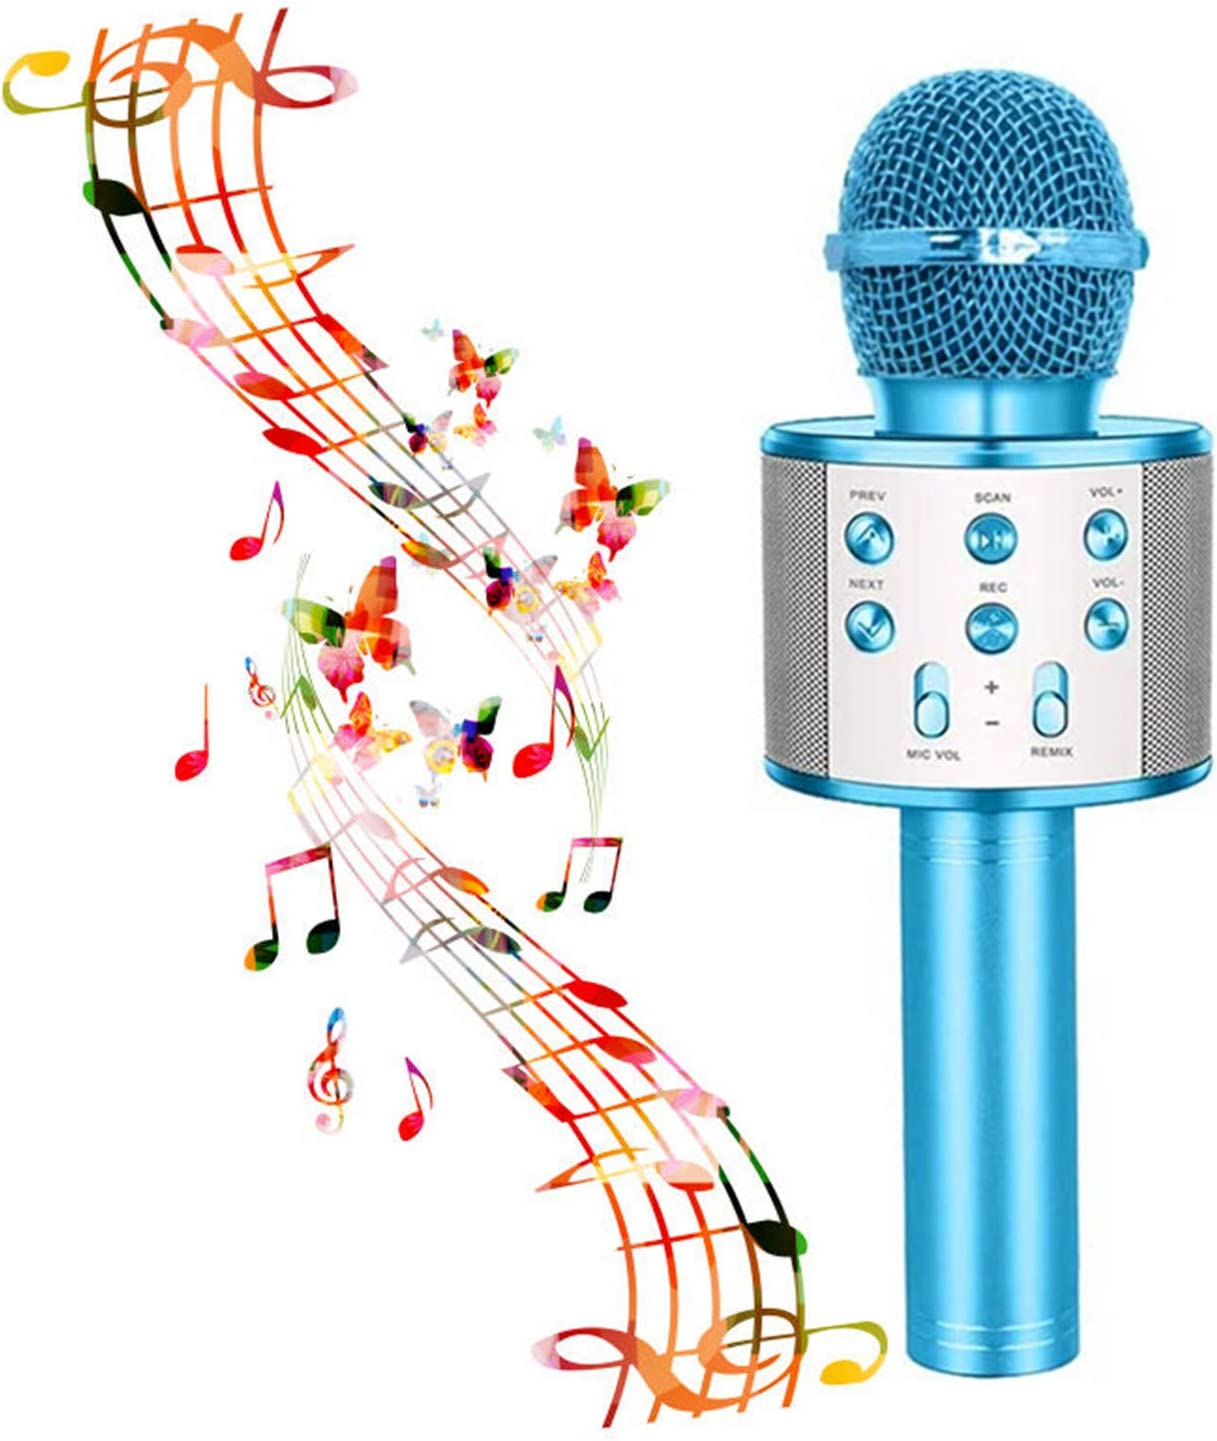 Wireless Karaoke Microphone,Bluetooth Karaoke Microphone Handheld Portable Karaoke Player, Home KTV Player with Record Function,Compatible with Android & iOS Devices for Home KTV Party Kids